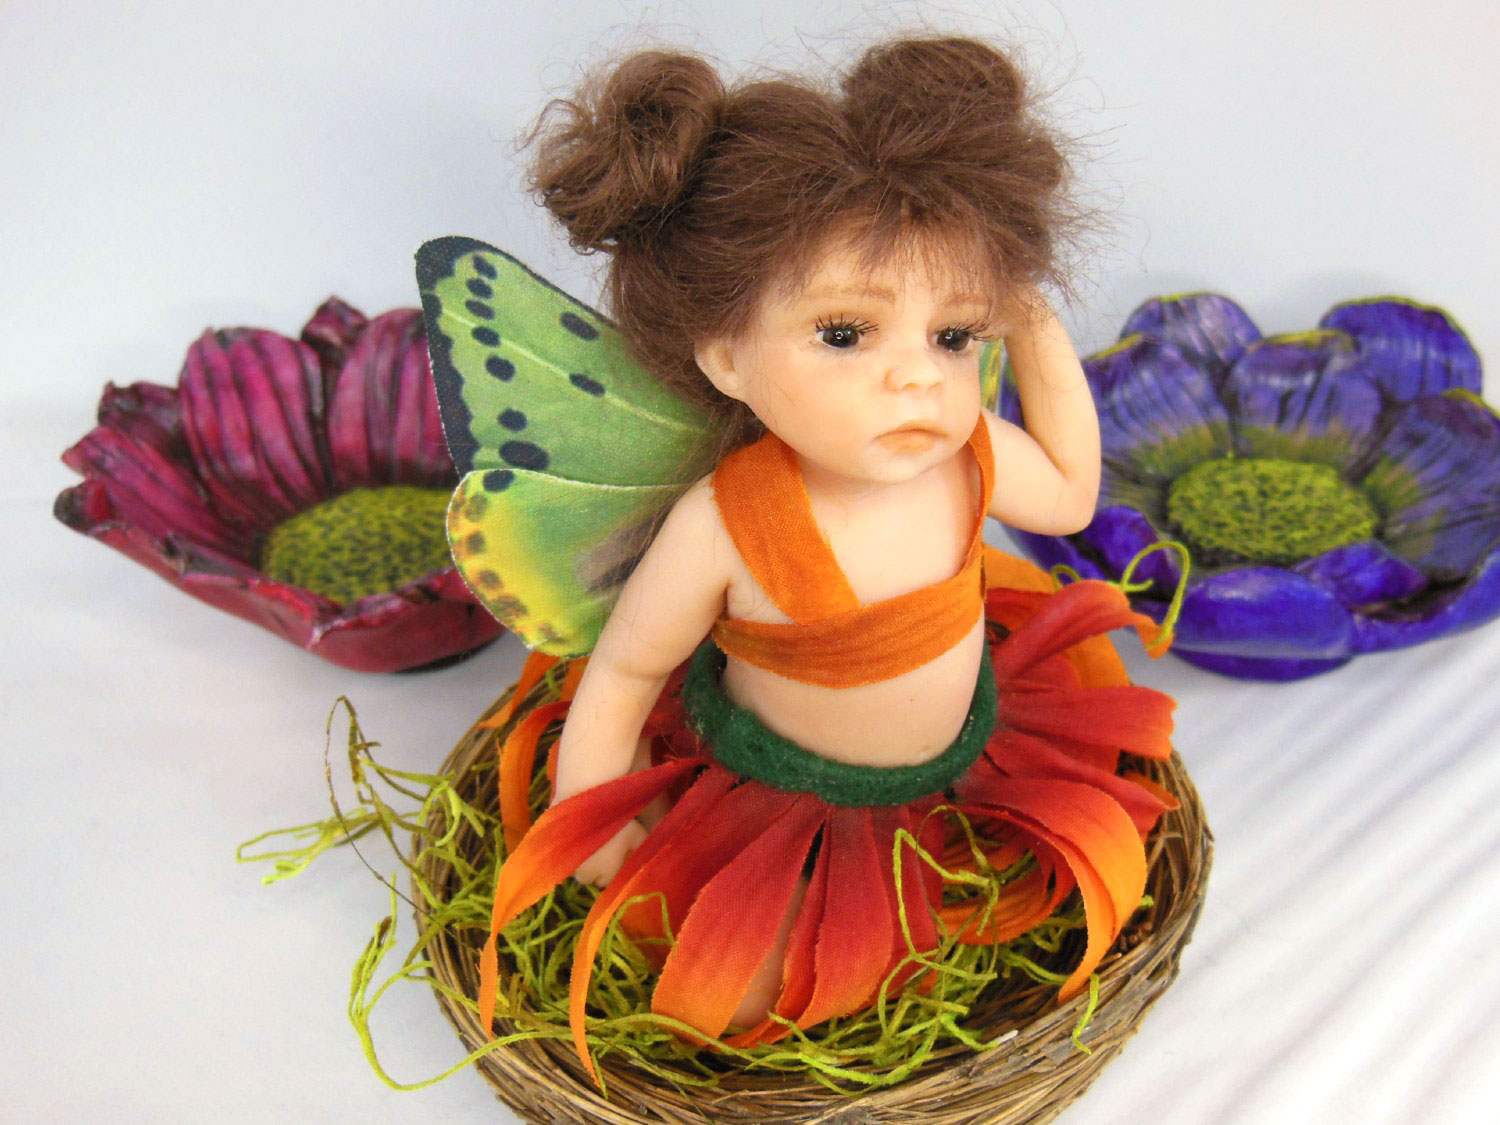 Sculpting a 6-inch Fairy/Child in Polymer Clay